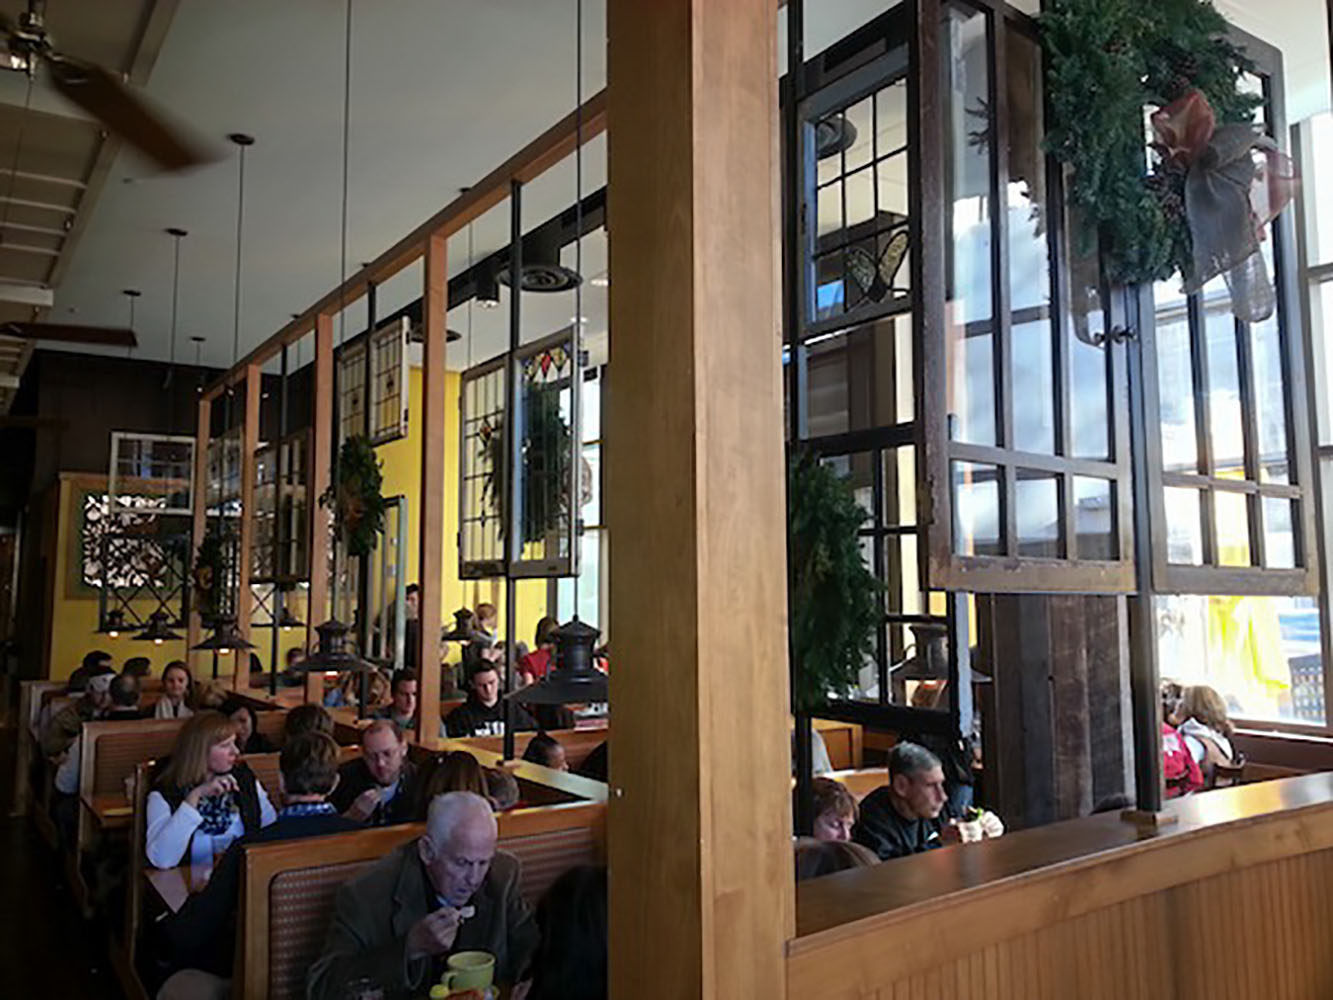 Tupelo Honey Café Greenville features fresh, southern, scratch-made food.